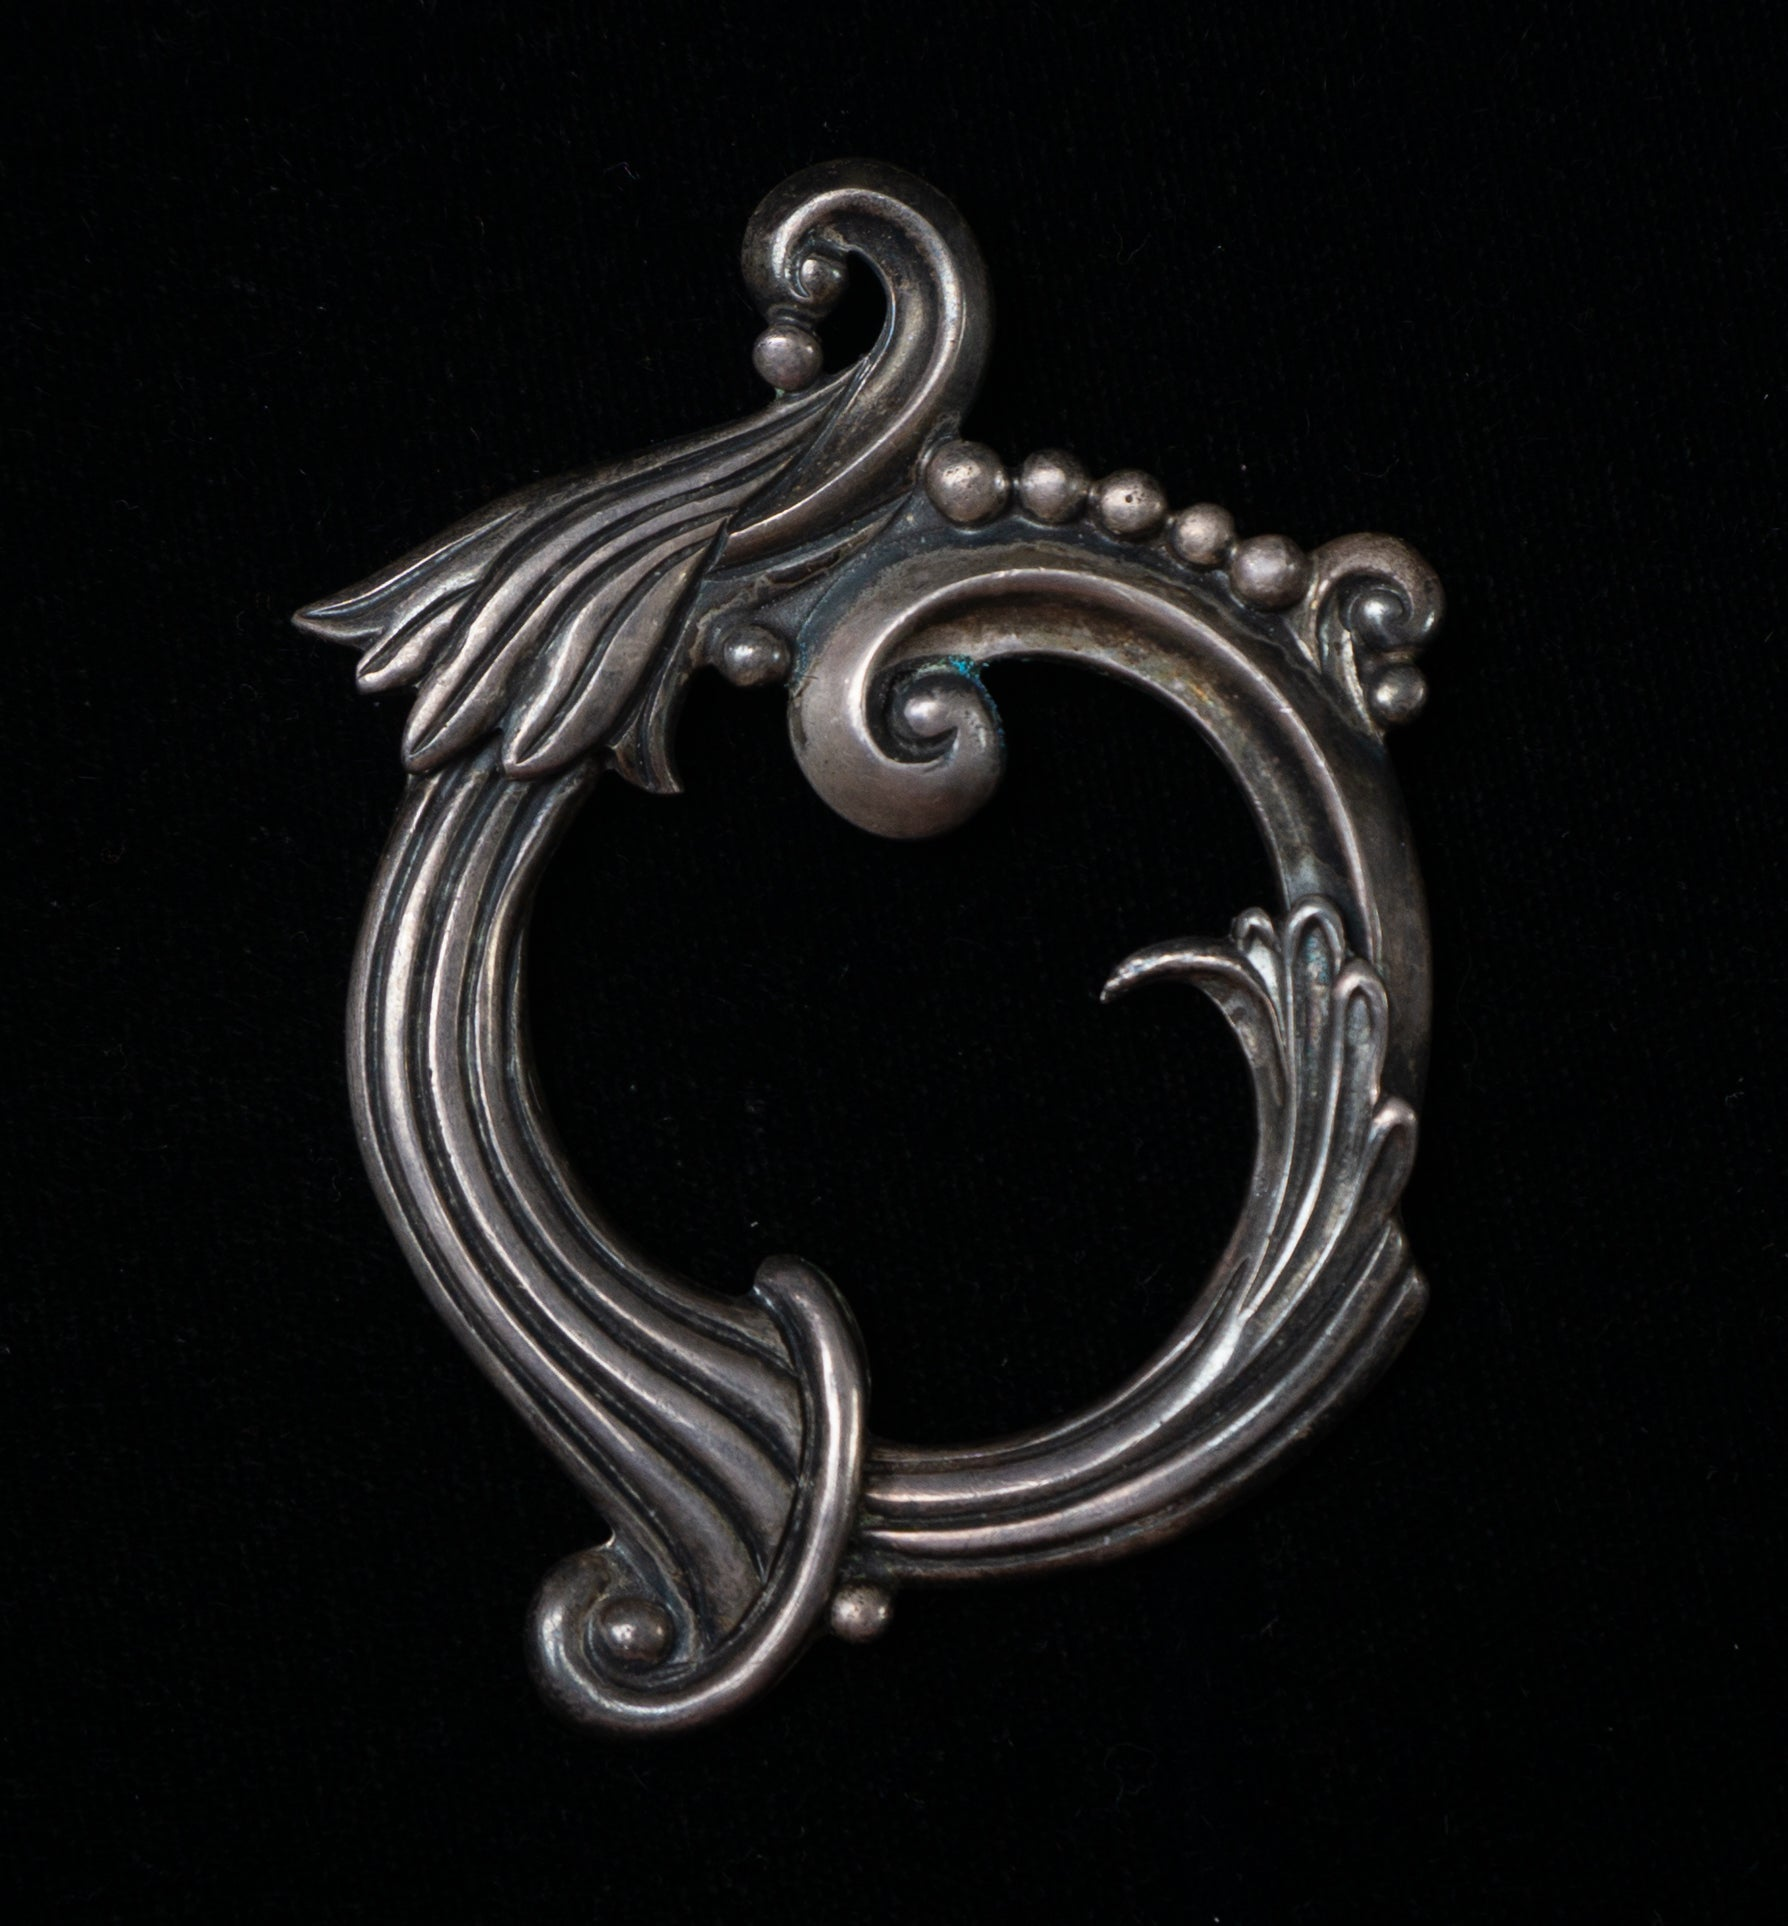 Margot de Taxco Mexican Sterling Silver Squash Blossom Swirls and Beads Circle Brooch